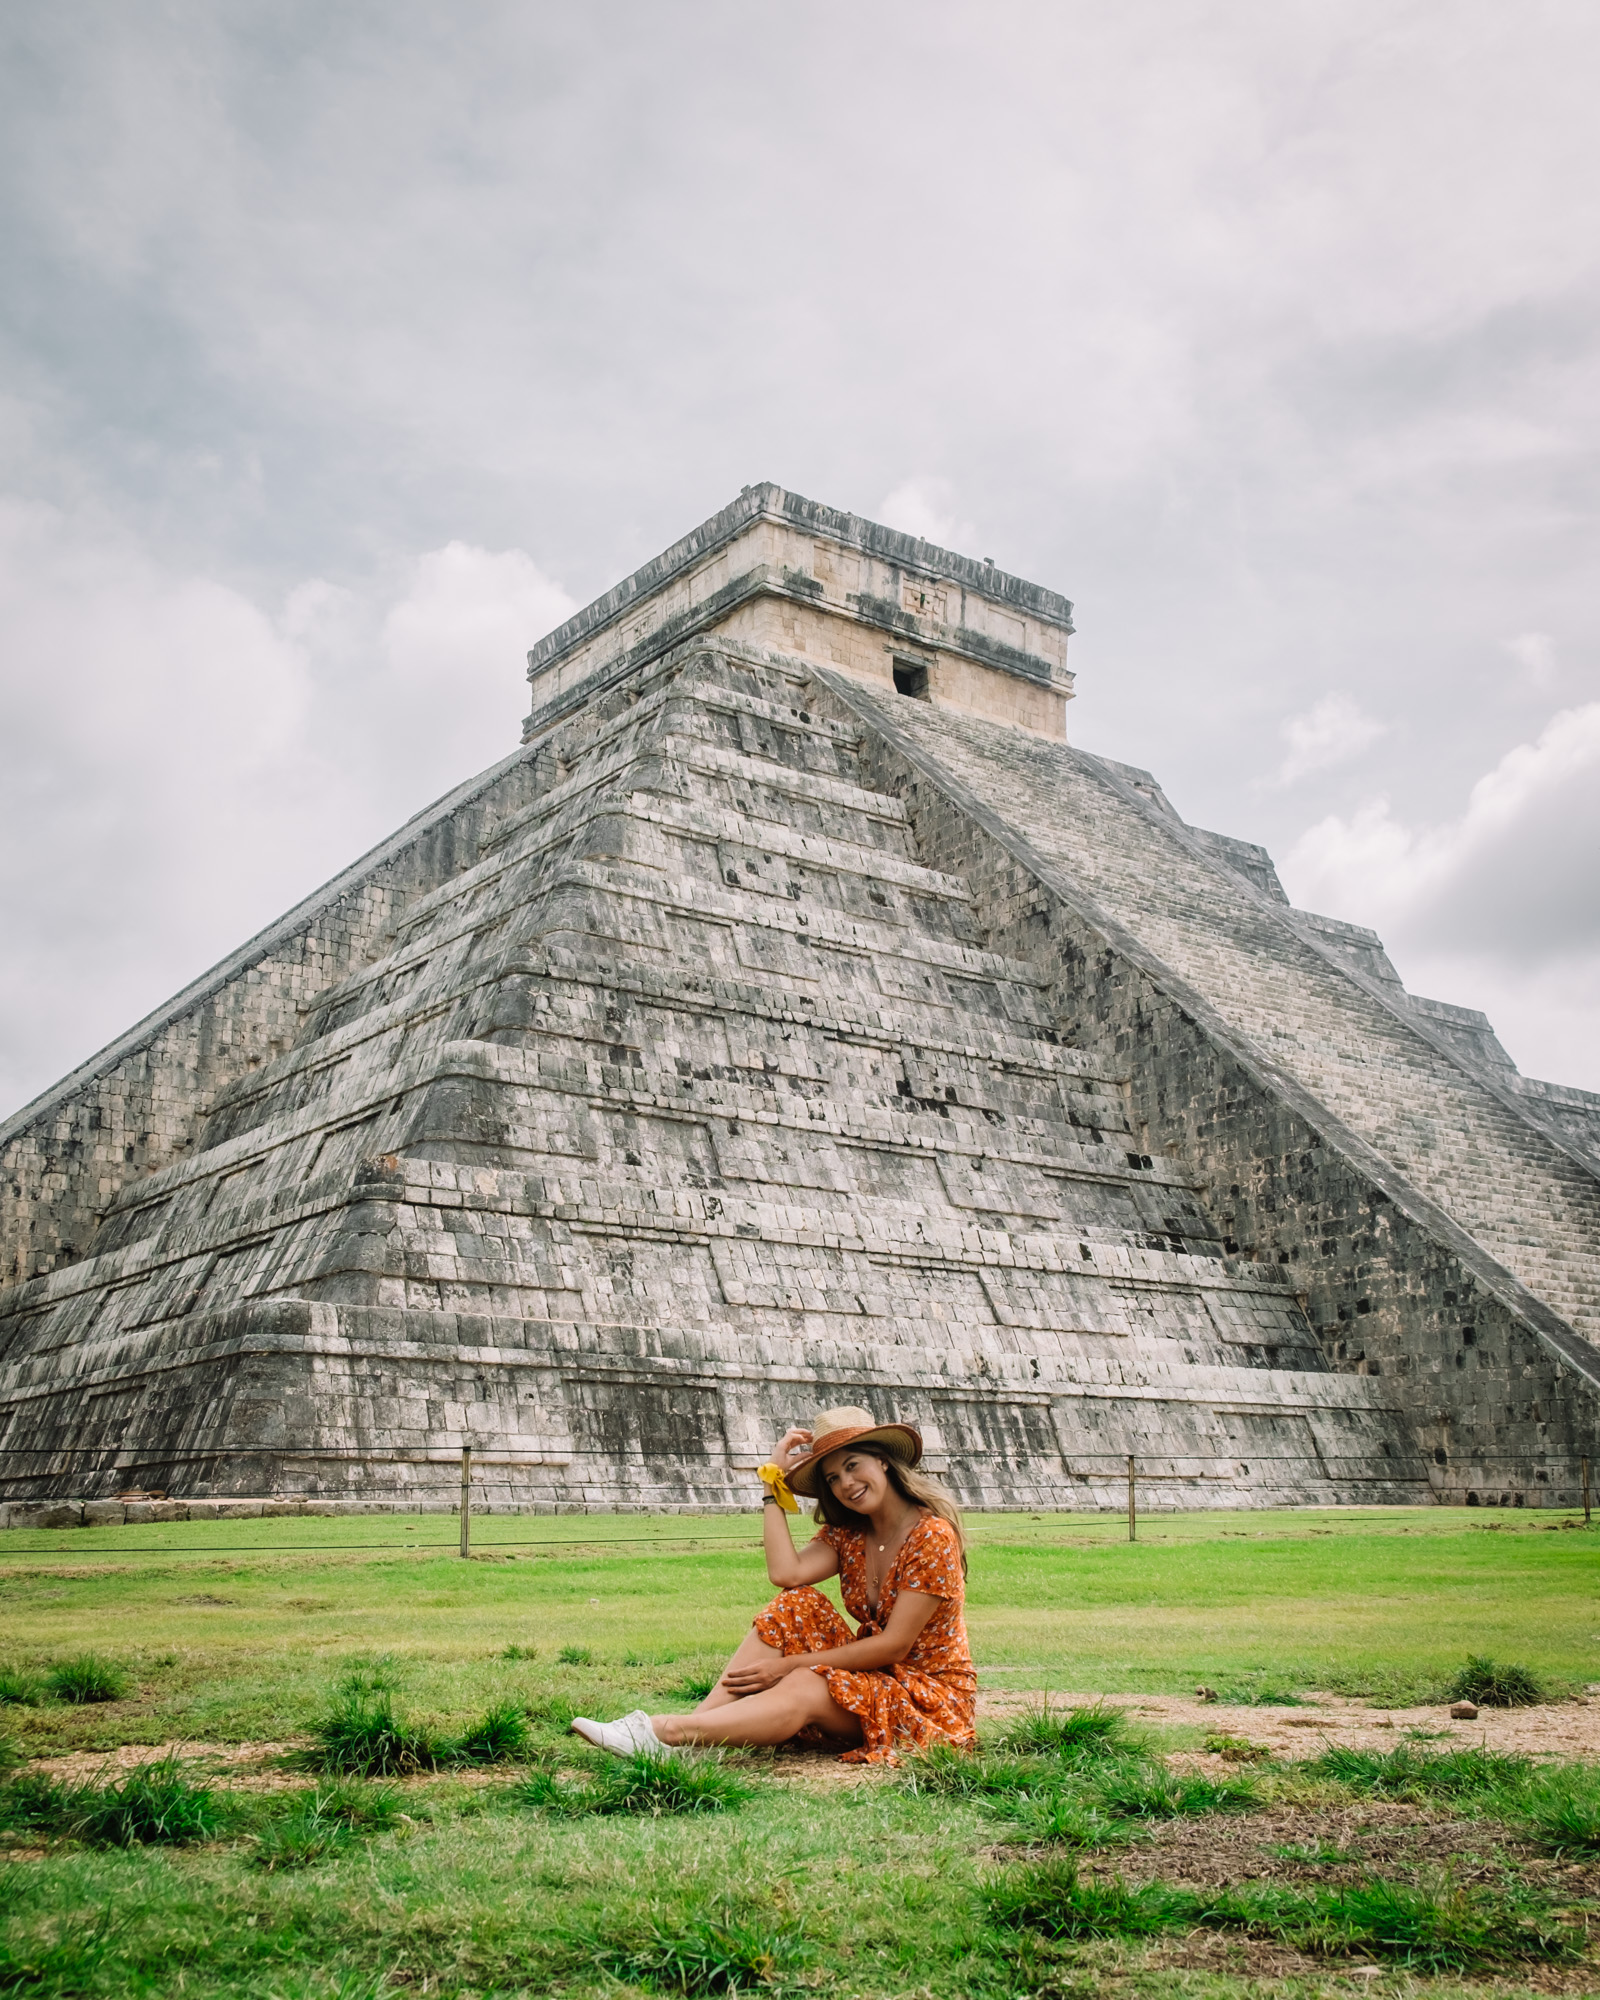 Rachel Off Duty: A Woman in a Red Dress Sitting in Front of Chichen-Itza, Mexico